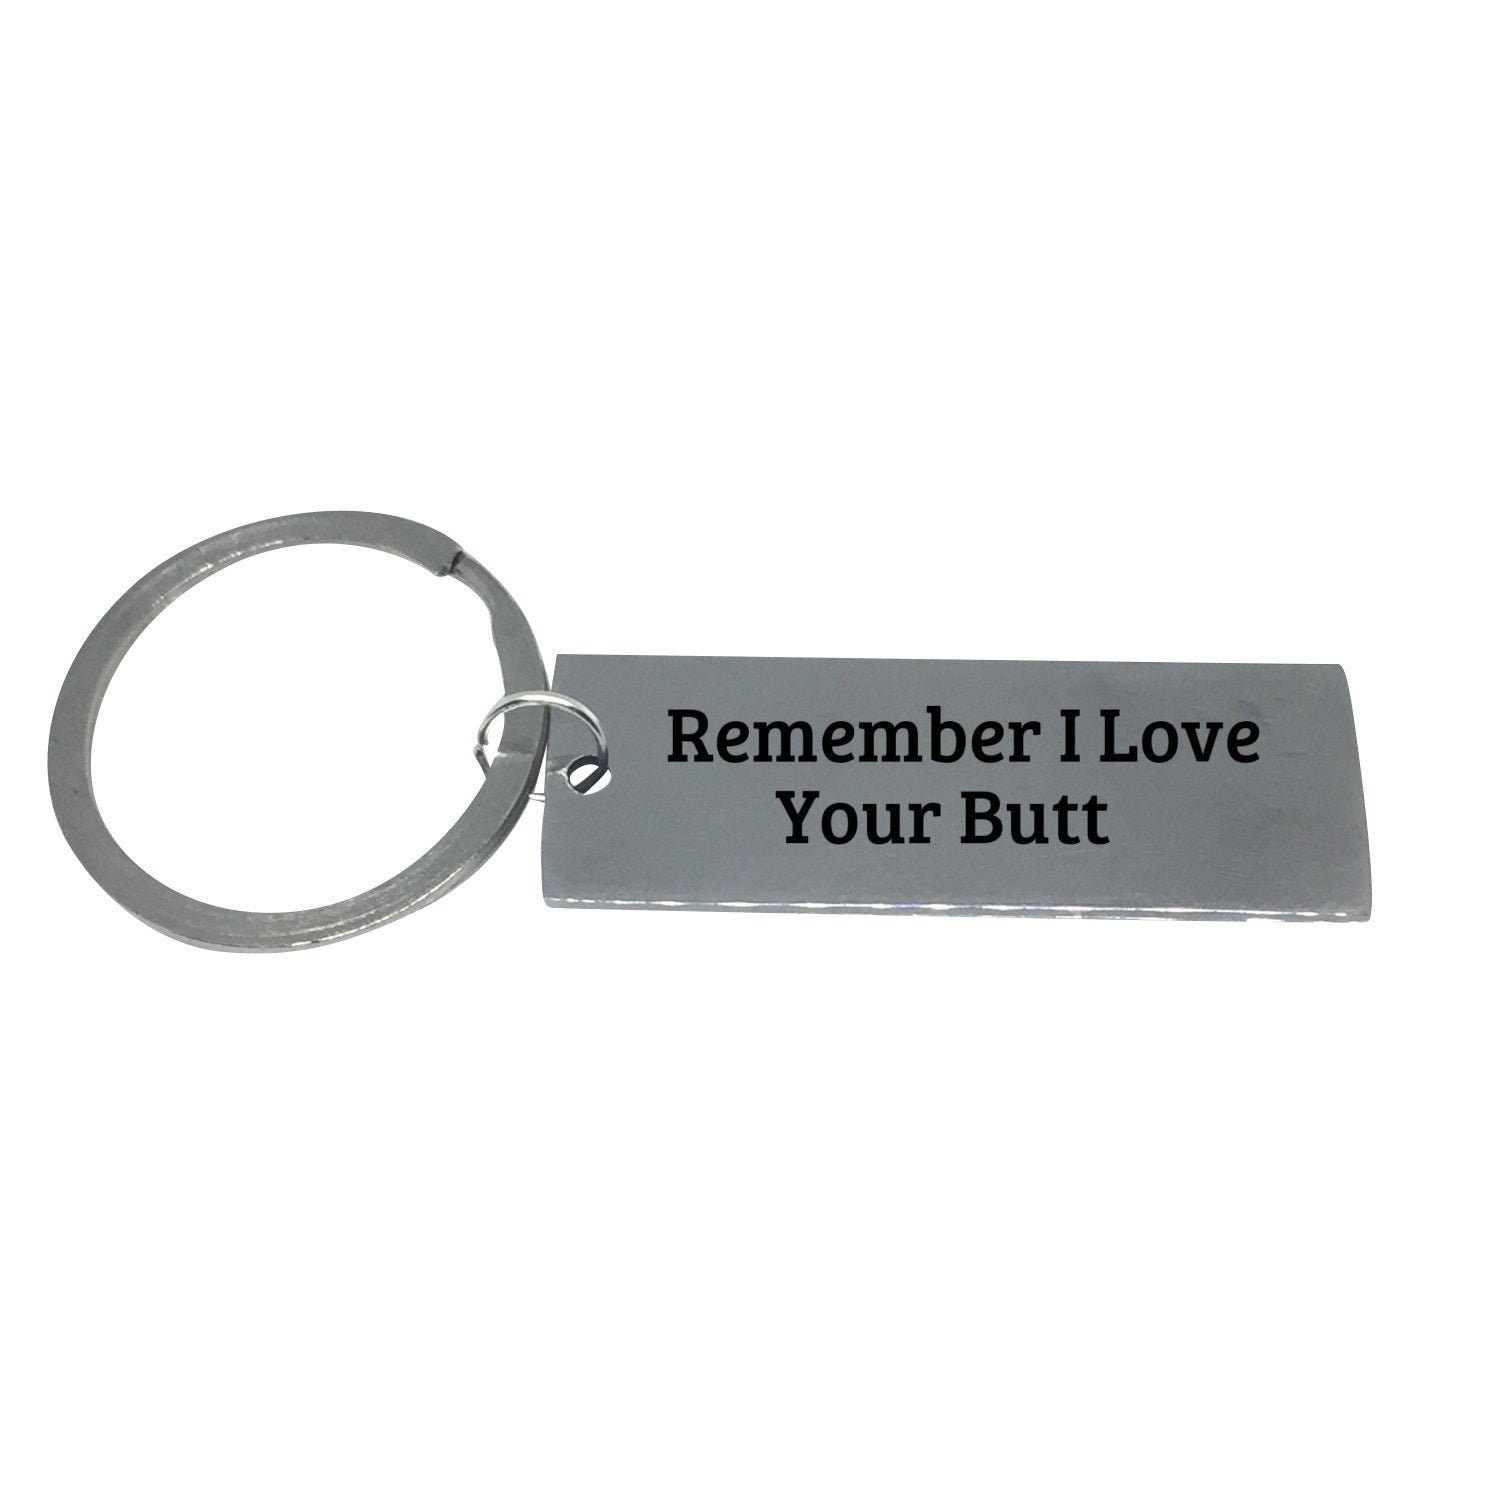 Funny Gifts for Him and Her Anniversary Birthday Valentines Day Key Ring Wherever You Go Come Back to Me,Stainless Steel Engraved Compass Key Chain